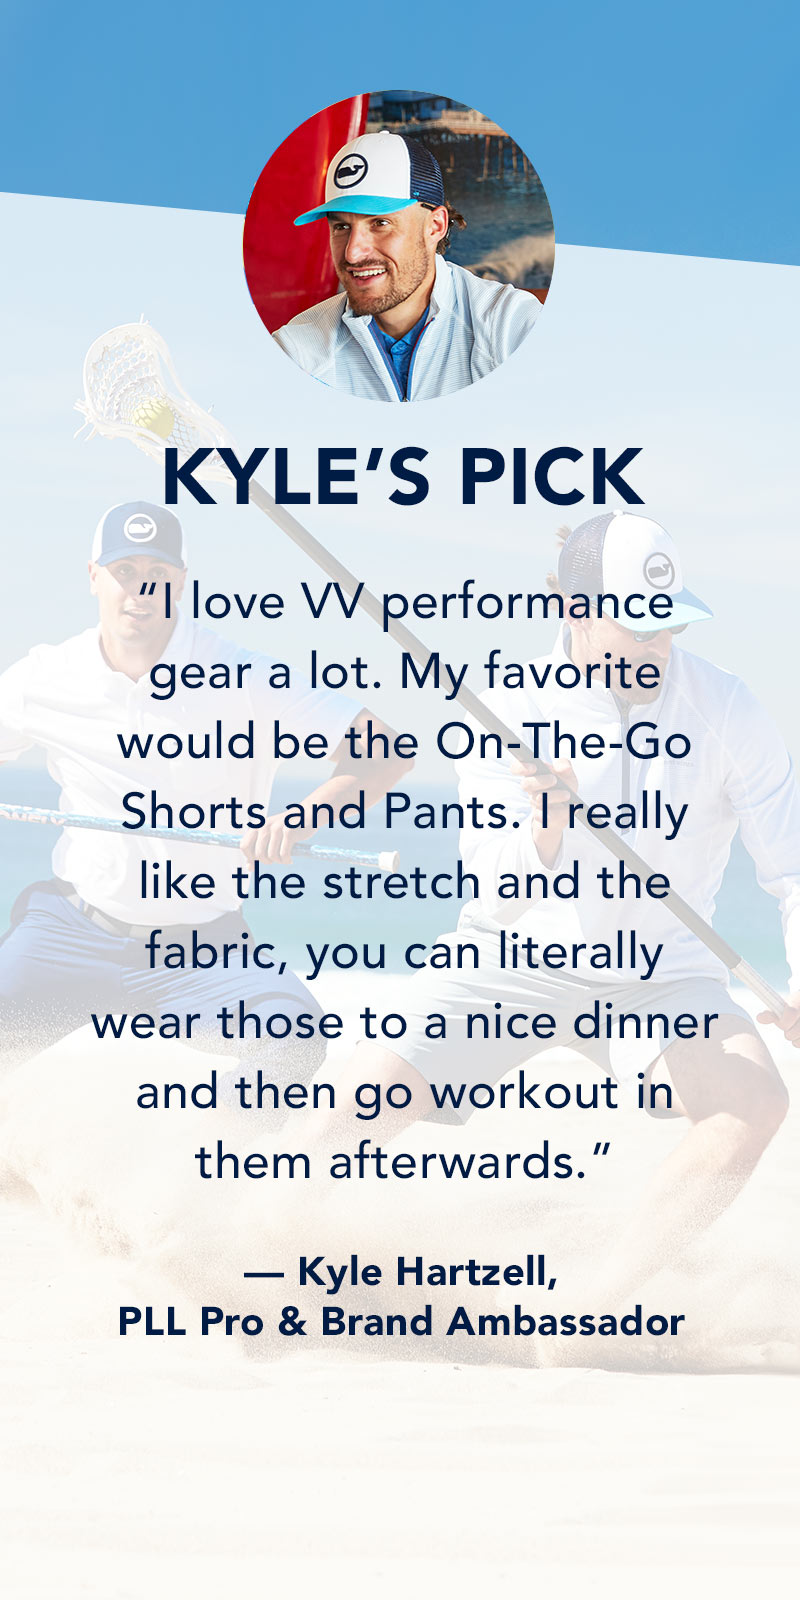 Kyle's Pick: I love VV performance gear a lot. My favorite would be the On-The-Go Shorts and Pants. I really like the stretch and the fabric, you can literally wear those to a nice dinner and then go workout in them afterwards. Kyle Hartzell - PLL Pro & Brand Ambassador